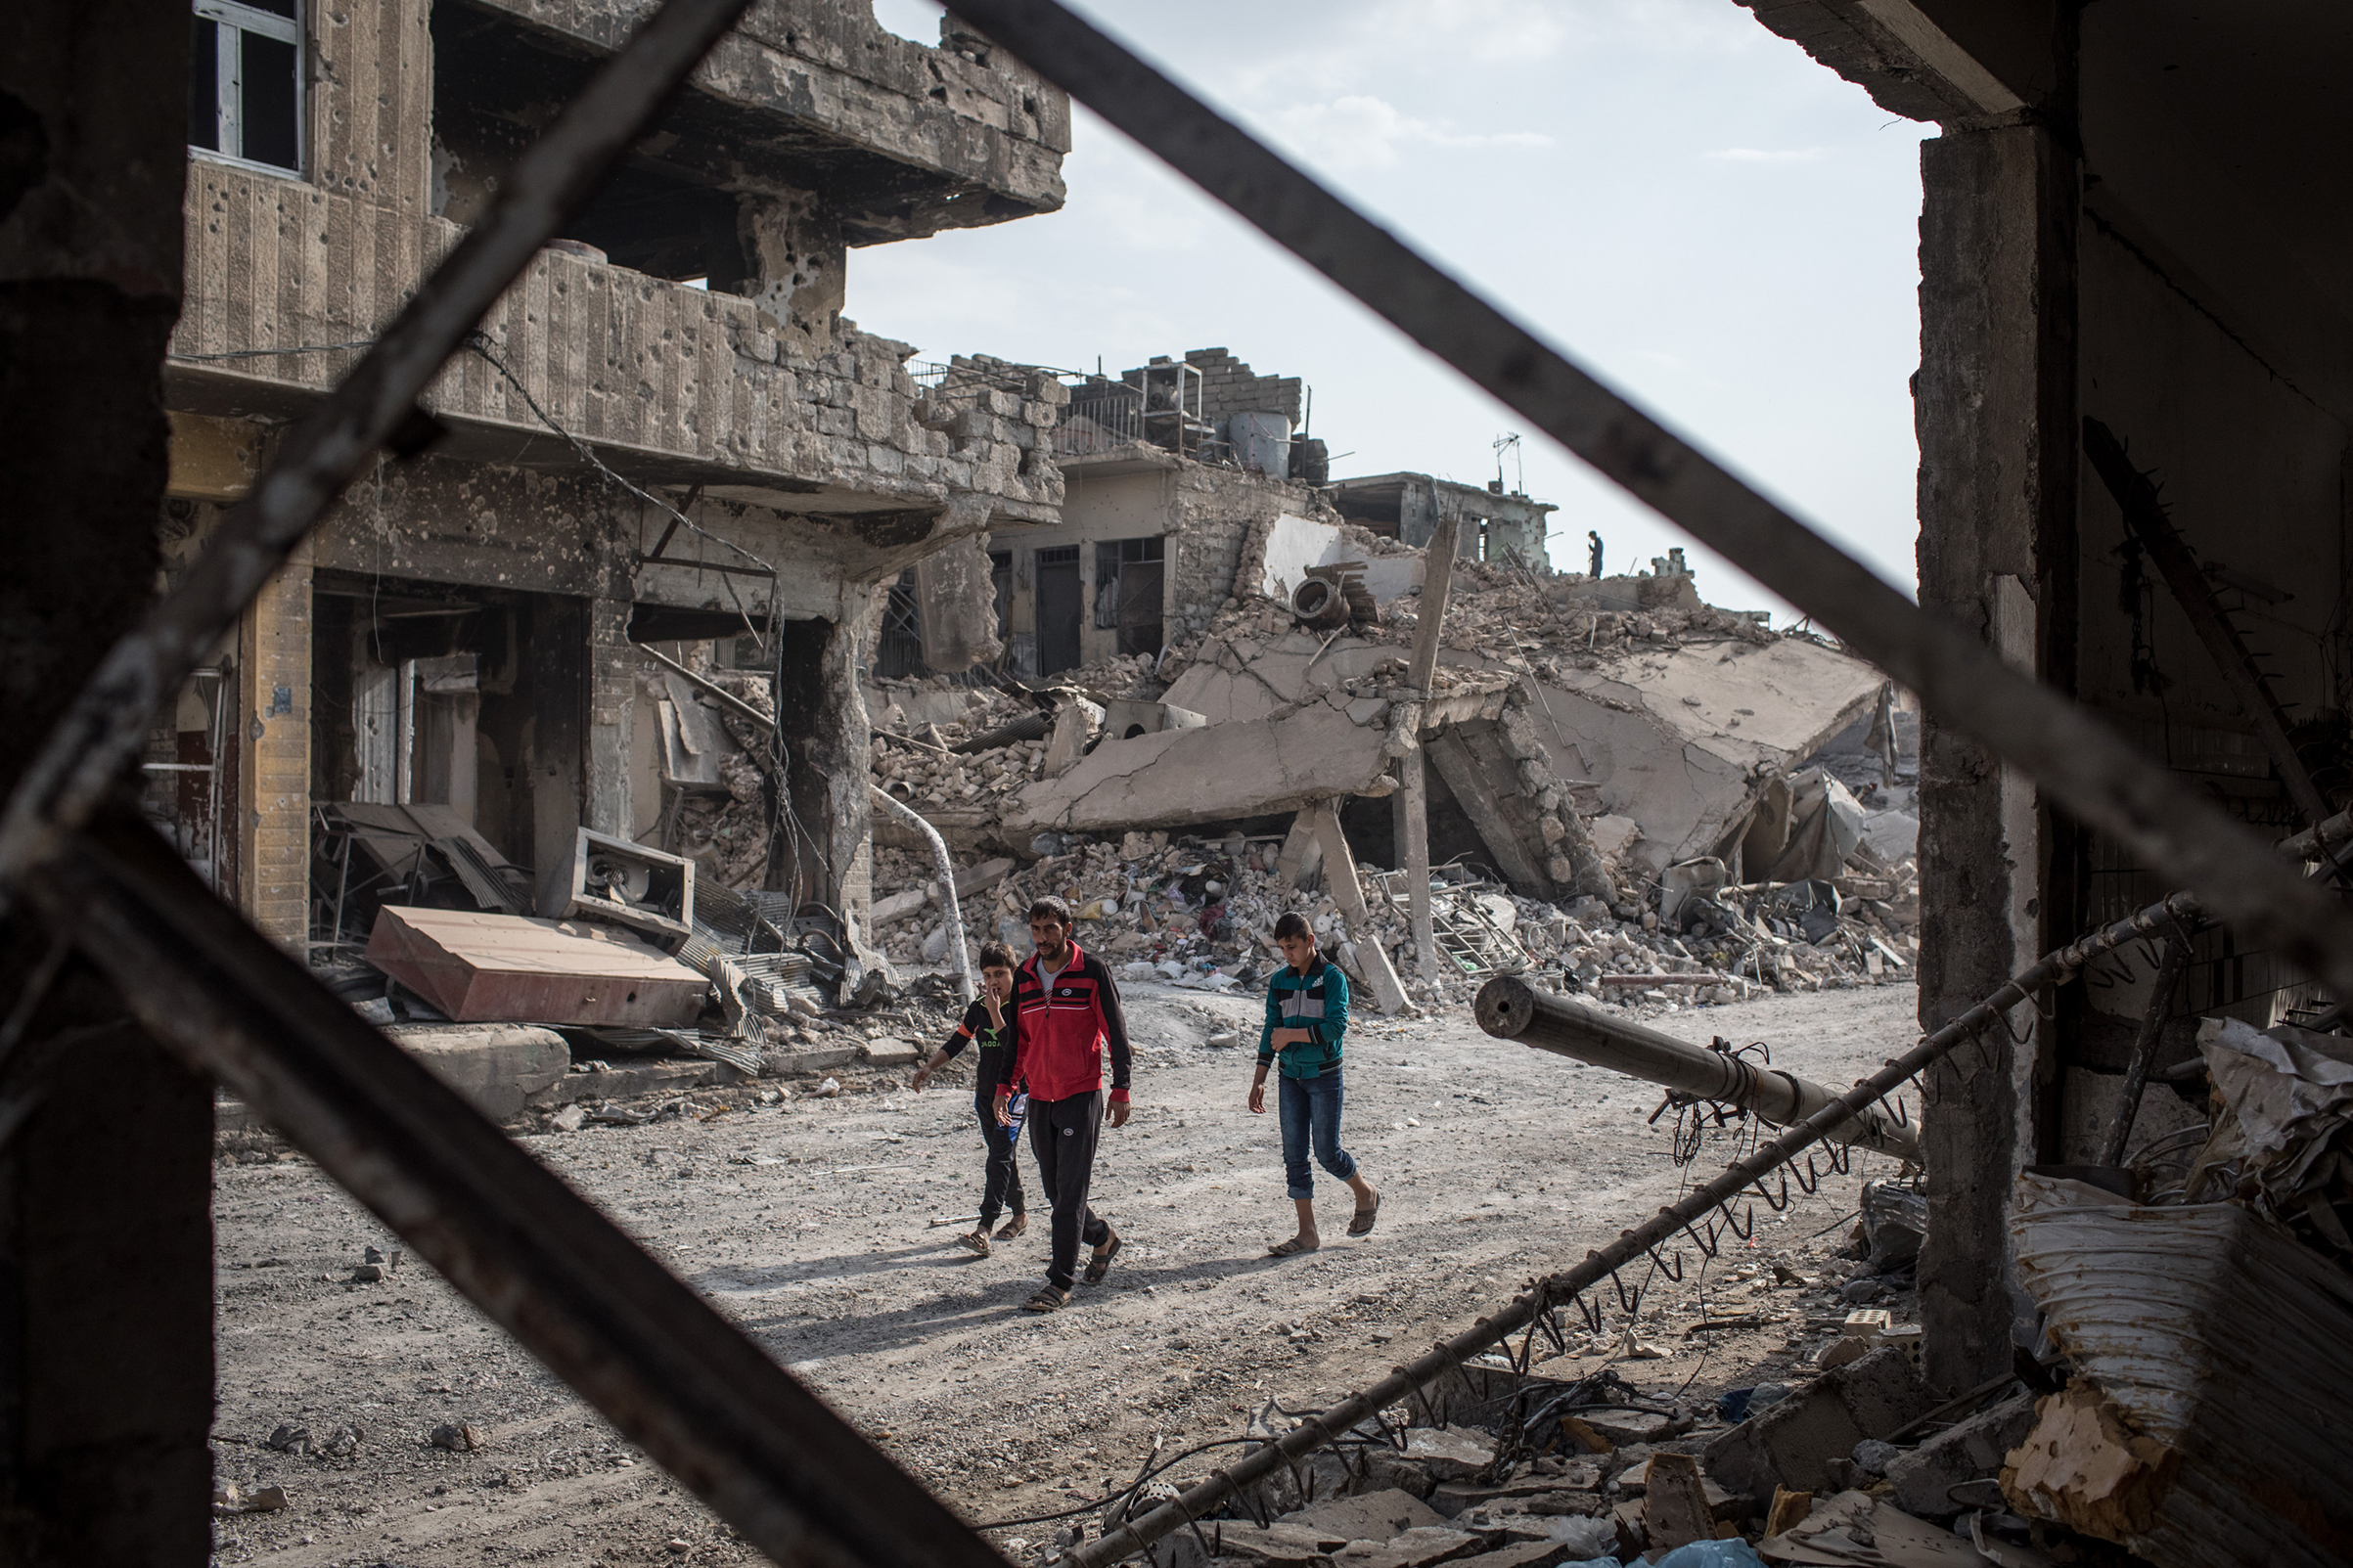 People walk amongst rubble from destroyed buildings in an outer neighborhood of the Old City in West Mosul on November 6, 2017 in Mosul, Iraq.